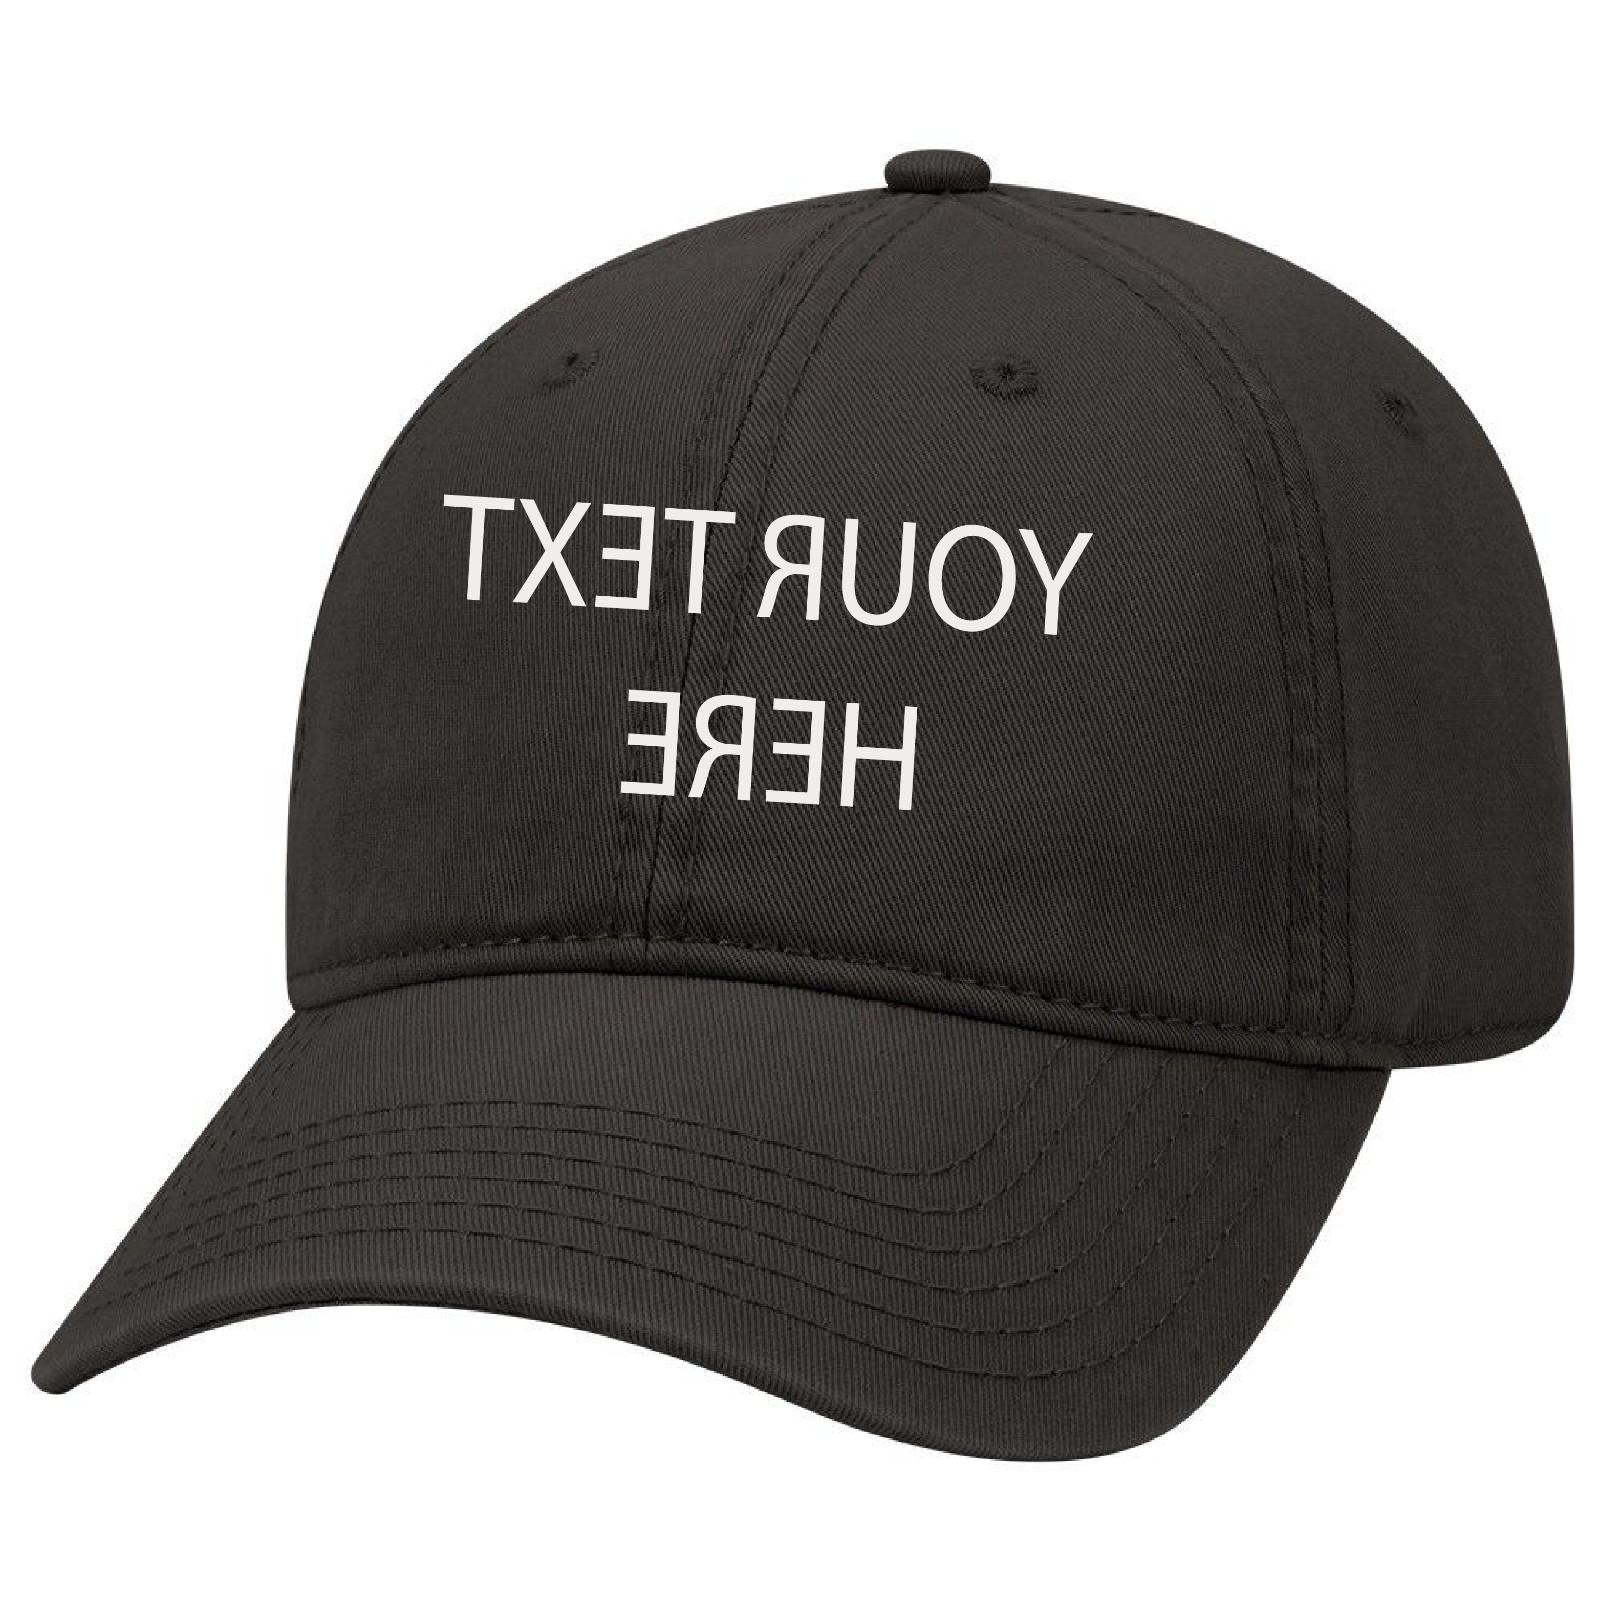 black dad cap customized and personalized embroidery